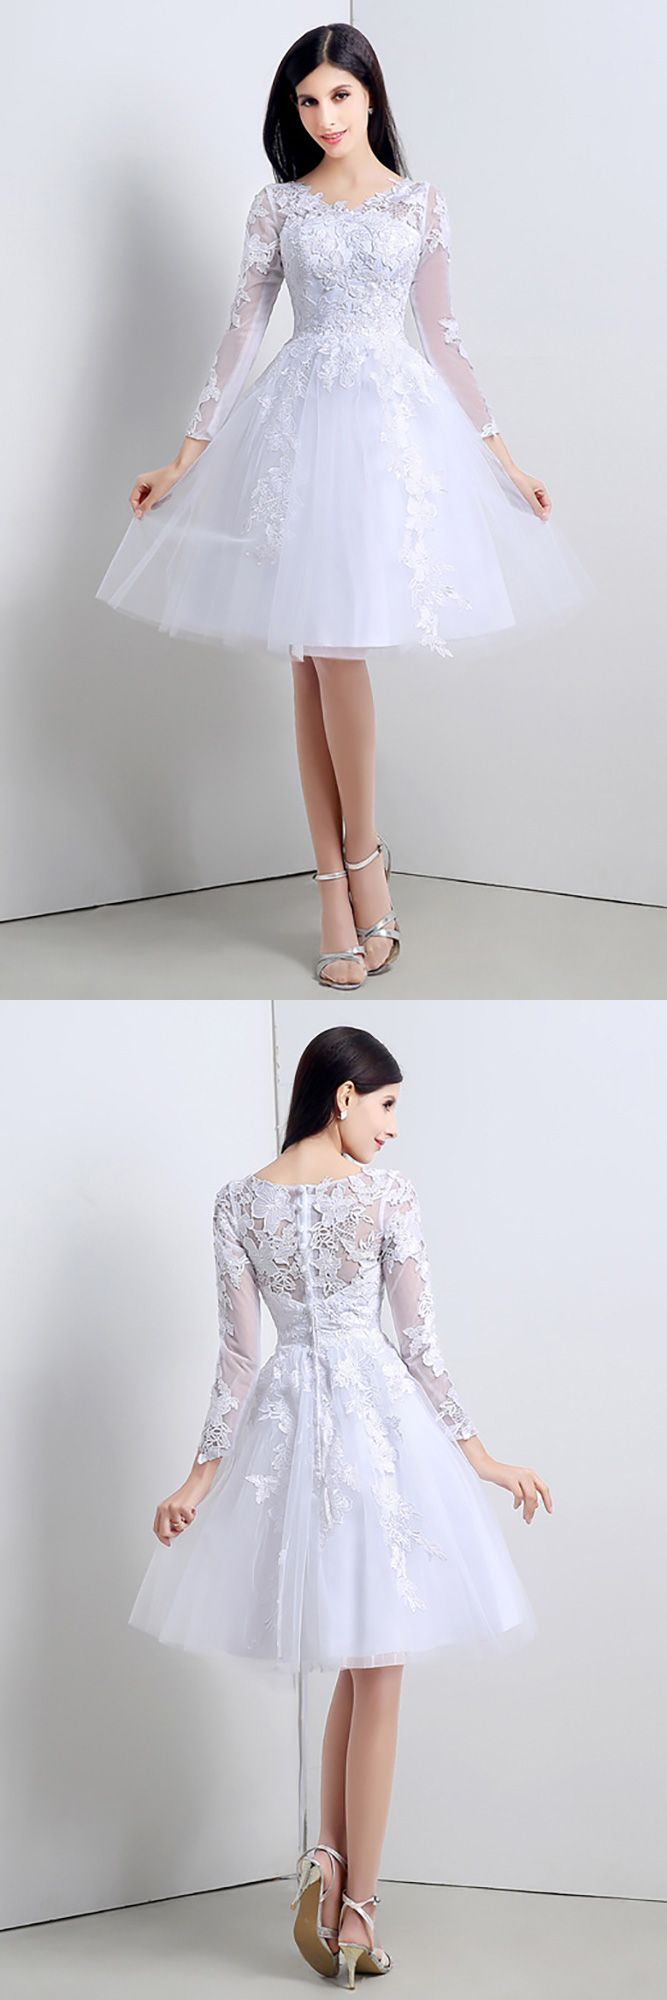 Short wedding reception dress  Modest Short Tulle Lace Wedding Dress Long Sleeved For Summer Beach